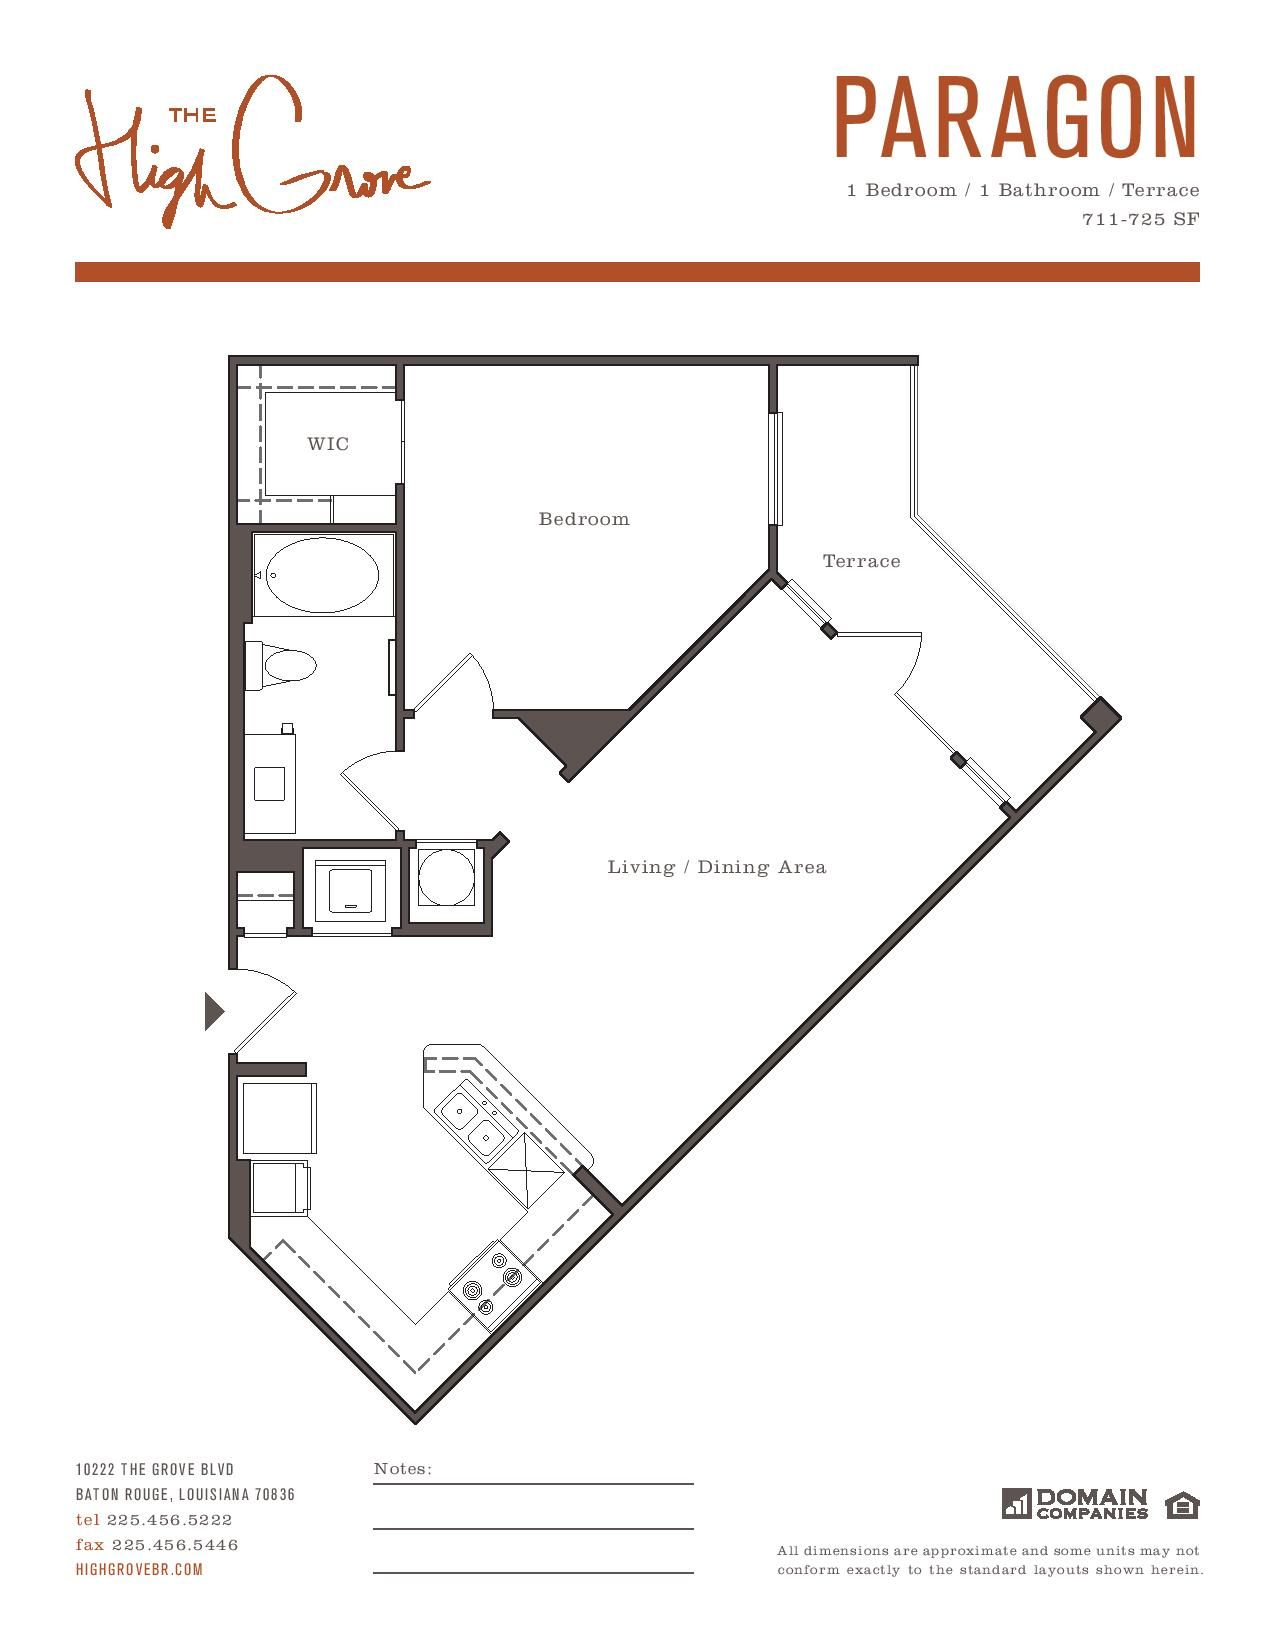 Paragon One Bedroom Floor Plan